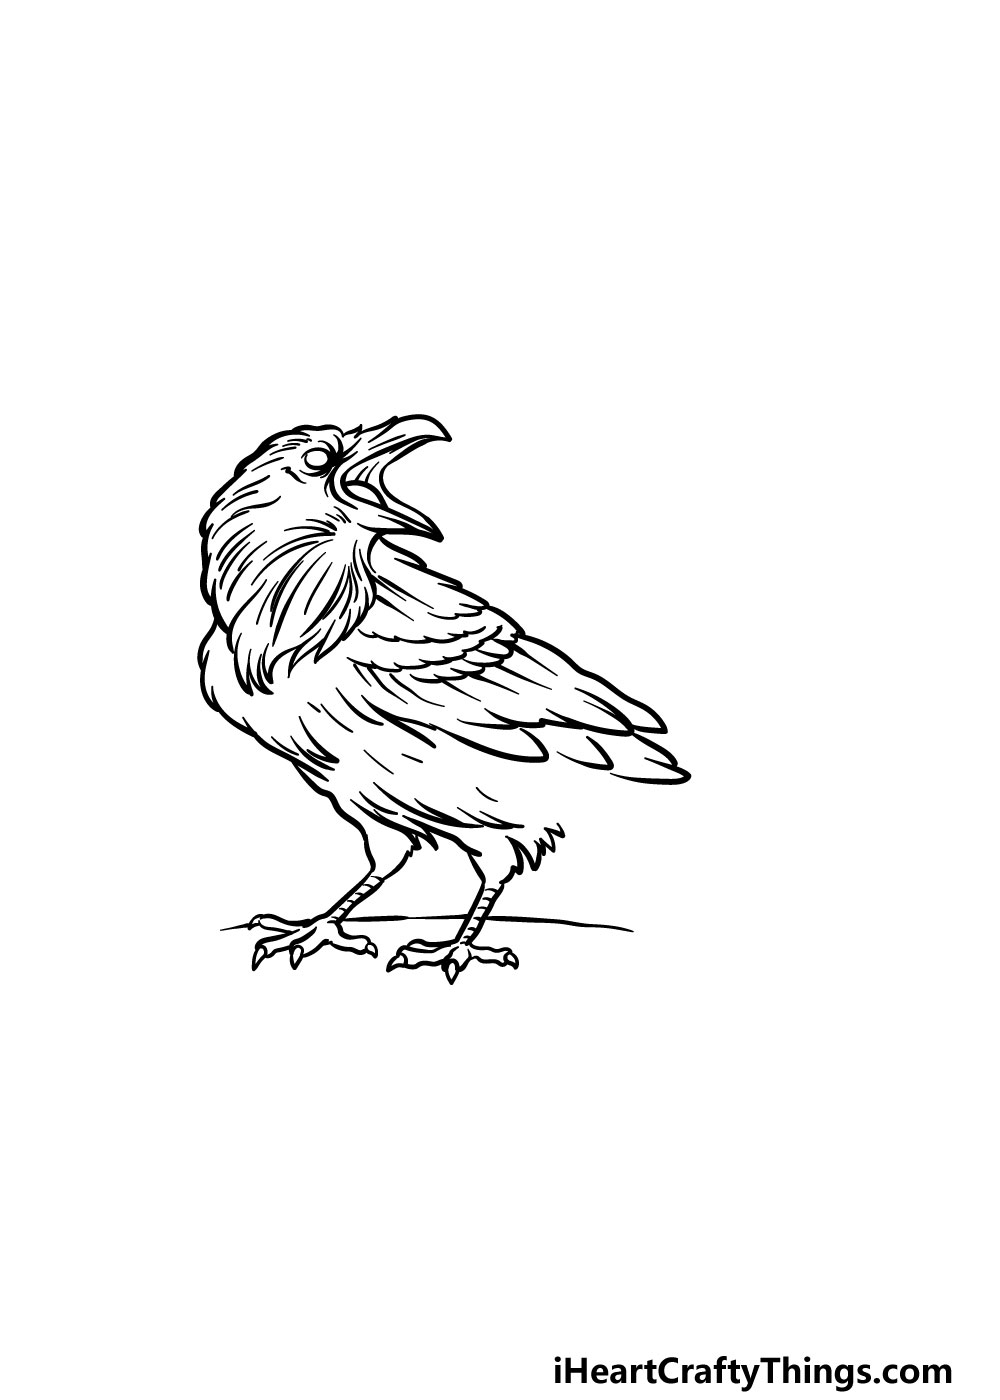 drawing a raven step 4